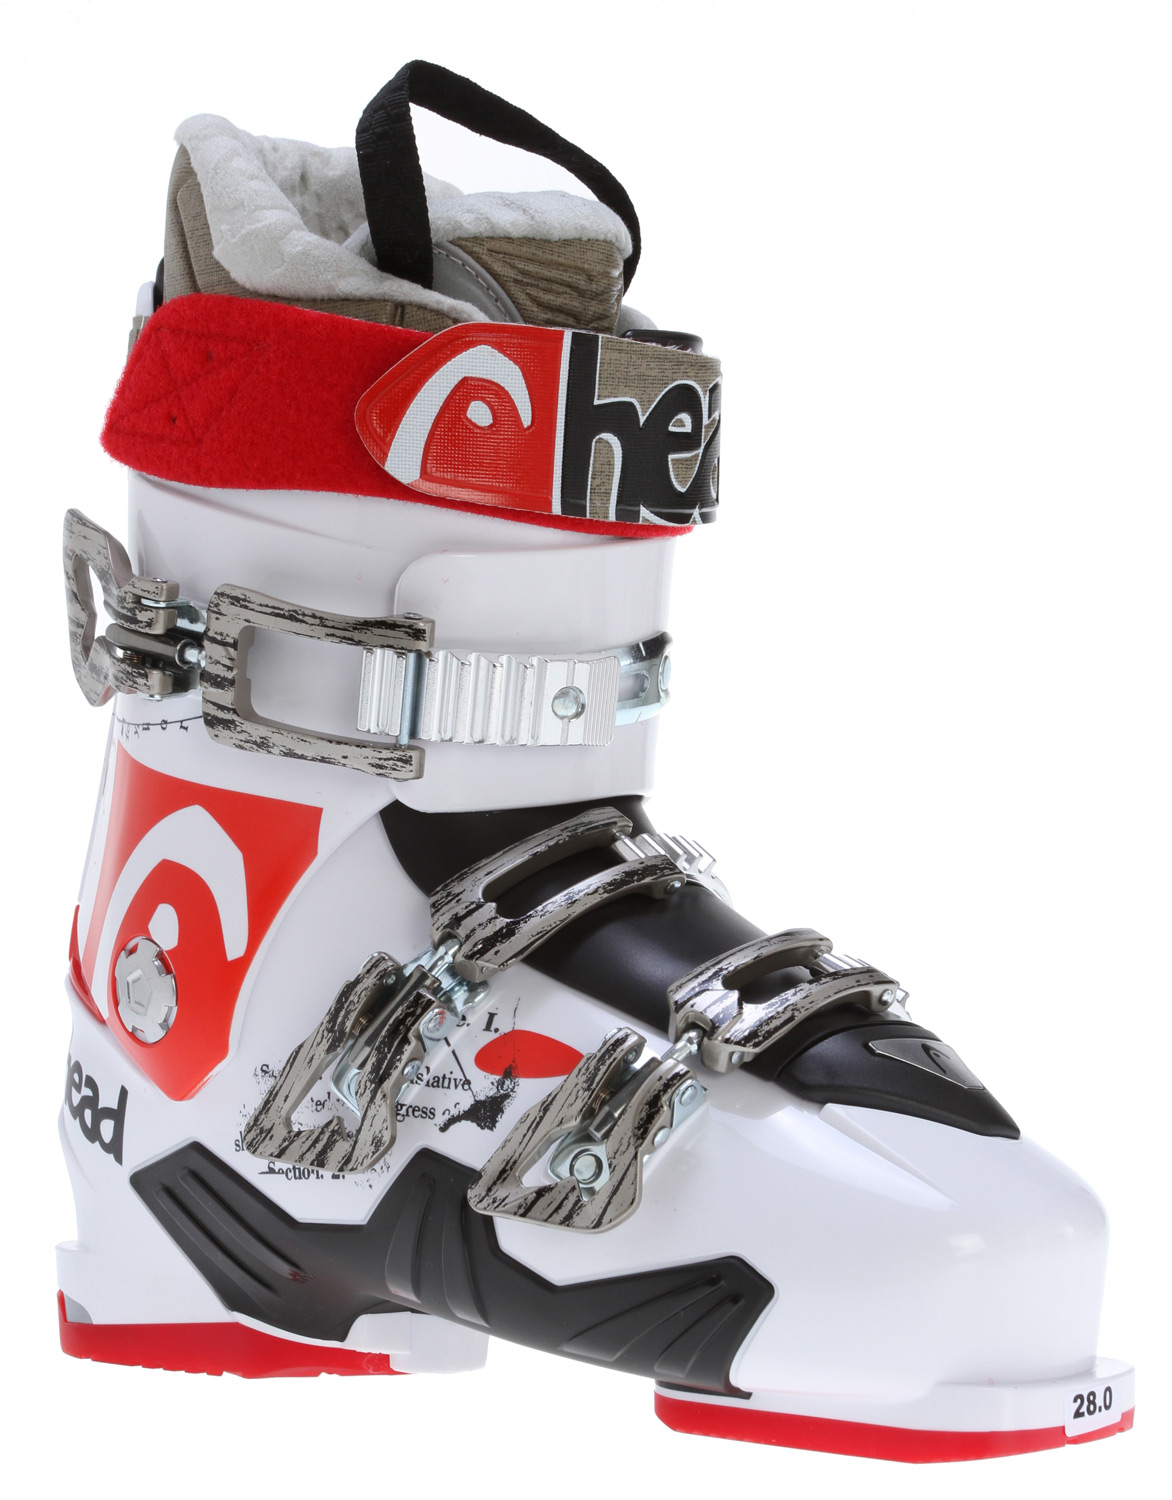 Ski Key Features of the Head The Show Ski Boots White: Level: Advance SL Shell HeatFit Liner Sport Frame Footbed 50mm Velcro Strap 2 Micro Adjustable Alloy Buckles 1 Micro Adjustable Wide Body Alloy Buckles 1 Super Macro Ratchet Bi-inj Power Control Frame Soft Walk Heel + Grip System Flex Index: 90 - $208.95